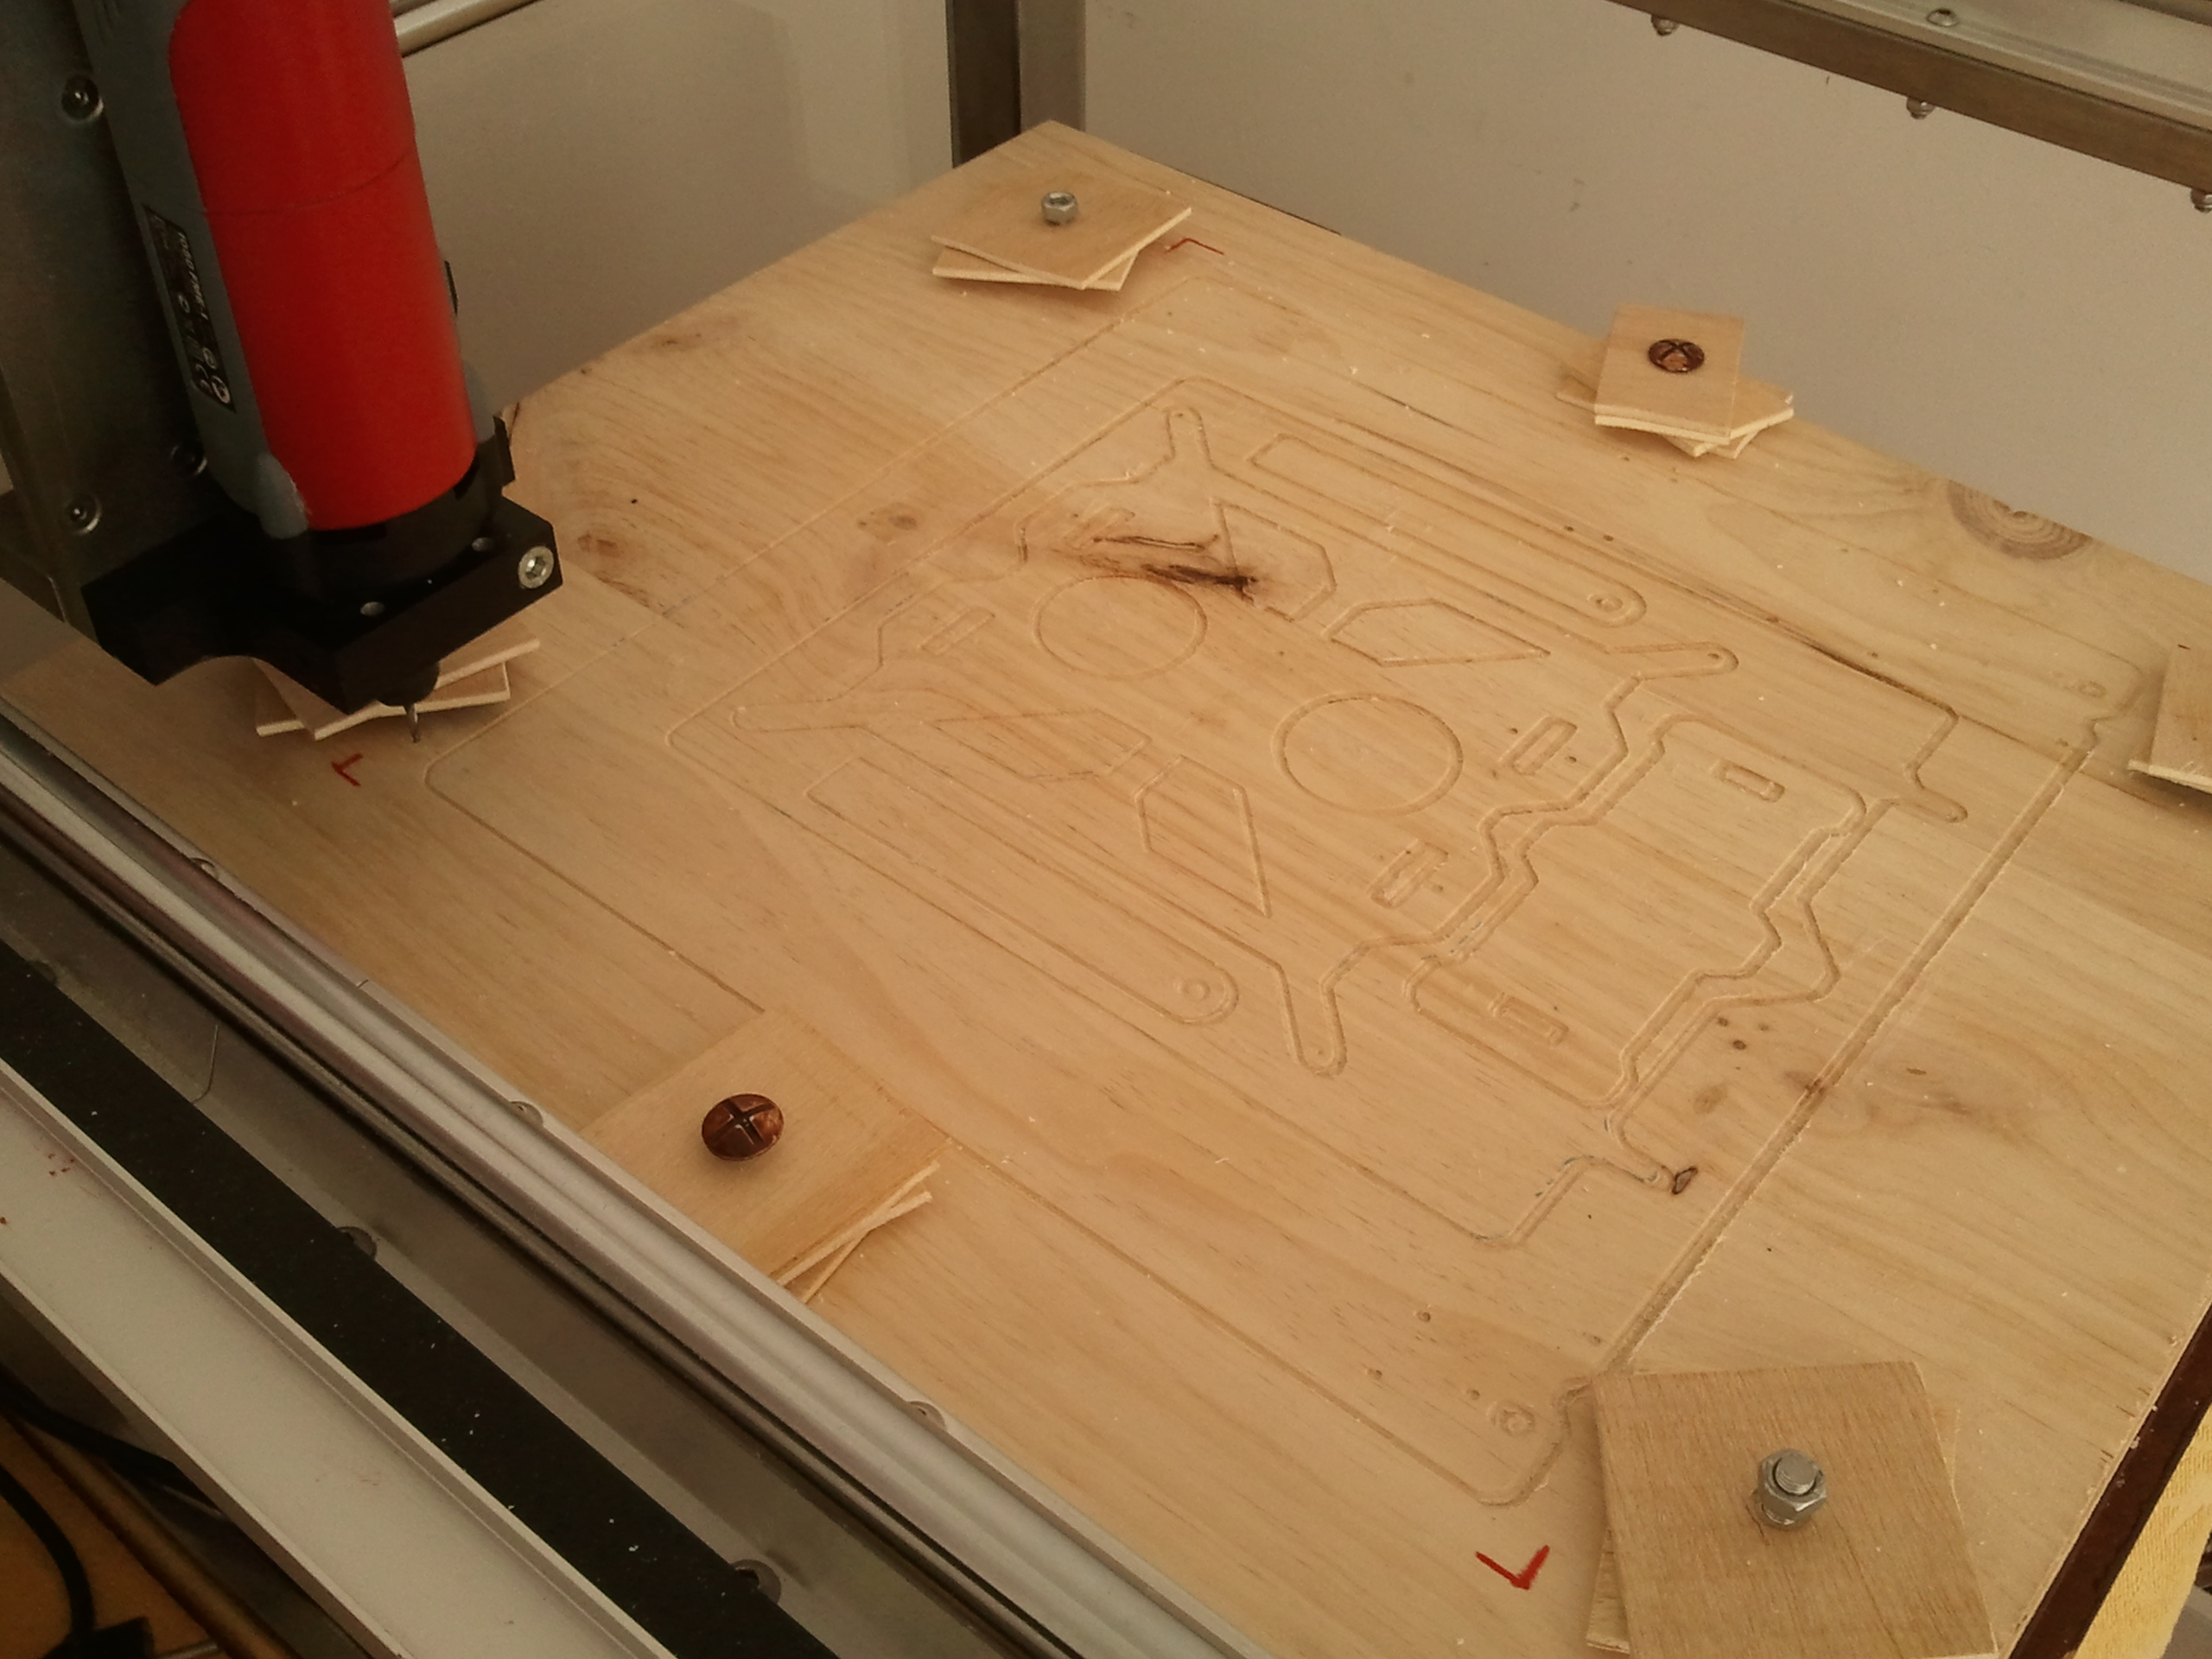 Picture of The Temporary CNC Bed Plate